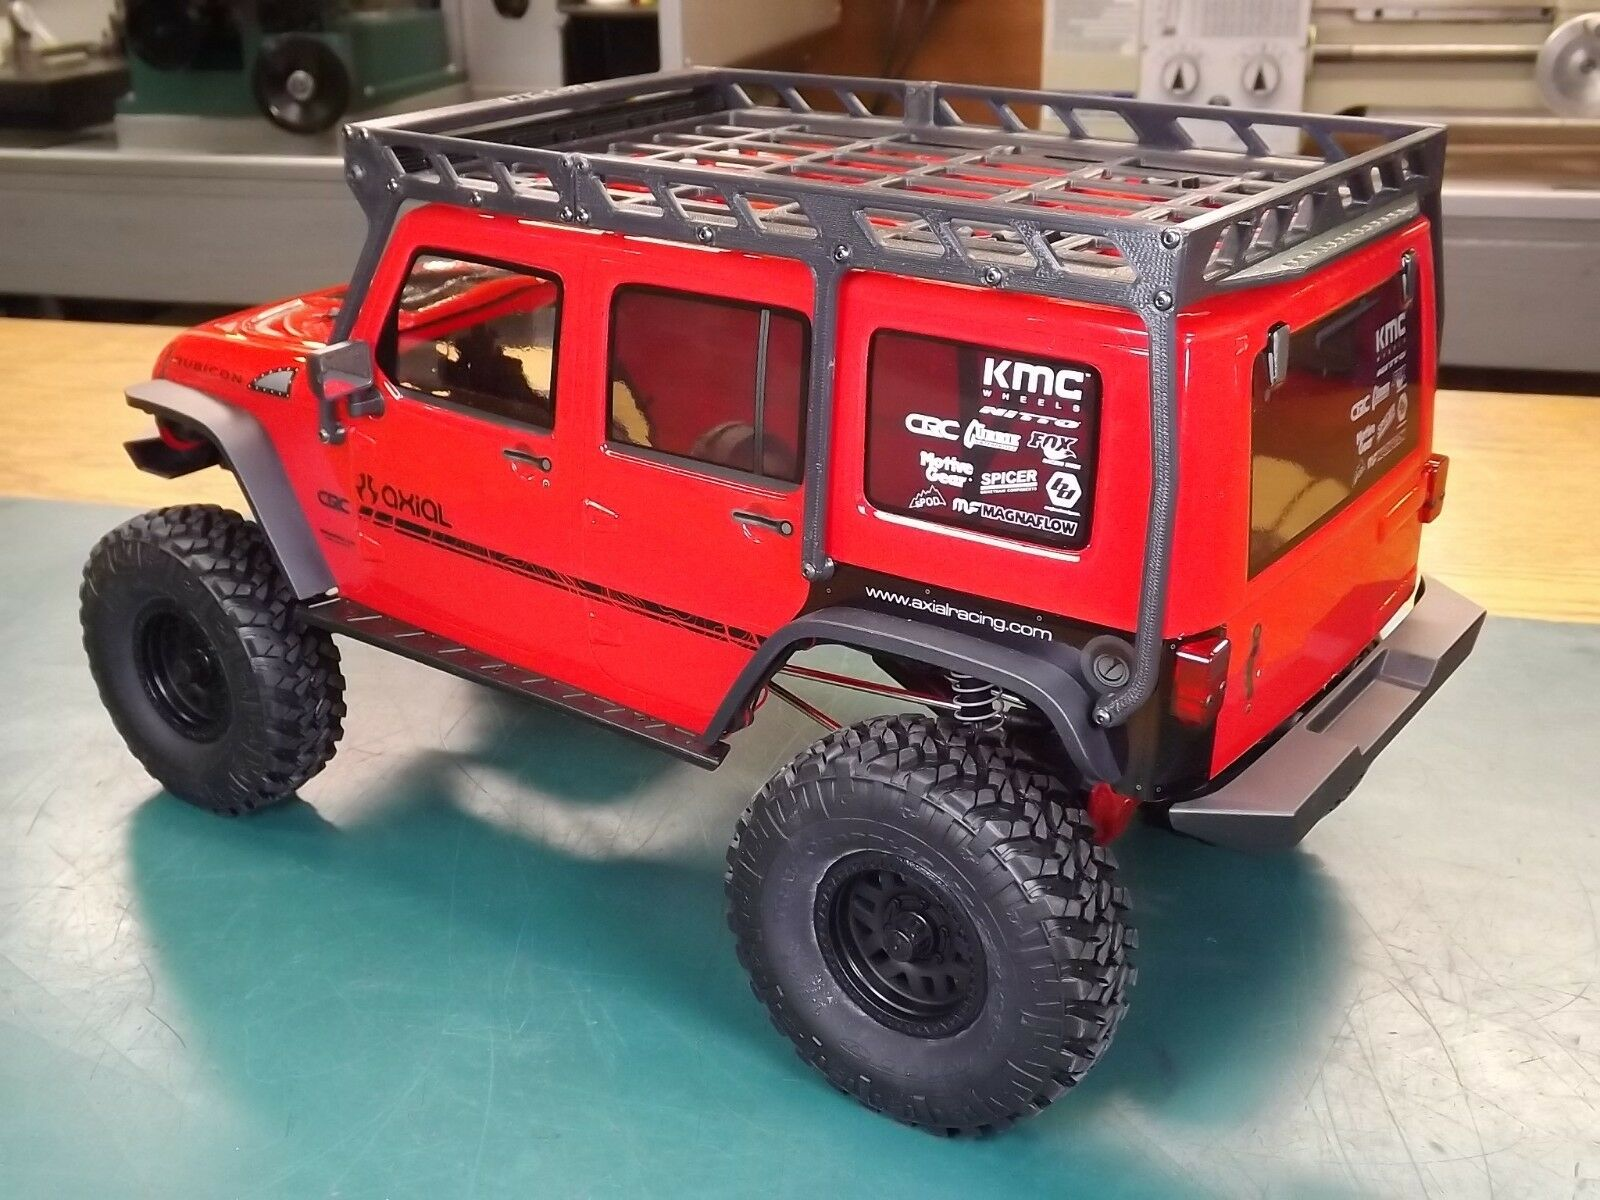 Rcdm Roof Rack For The Axial 2017 Jeep Wrangler Un In Mainan Mobil Remote Strong Cars Metalic Unlimited Crc Rtr Scx10 Ii